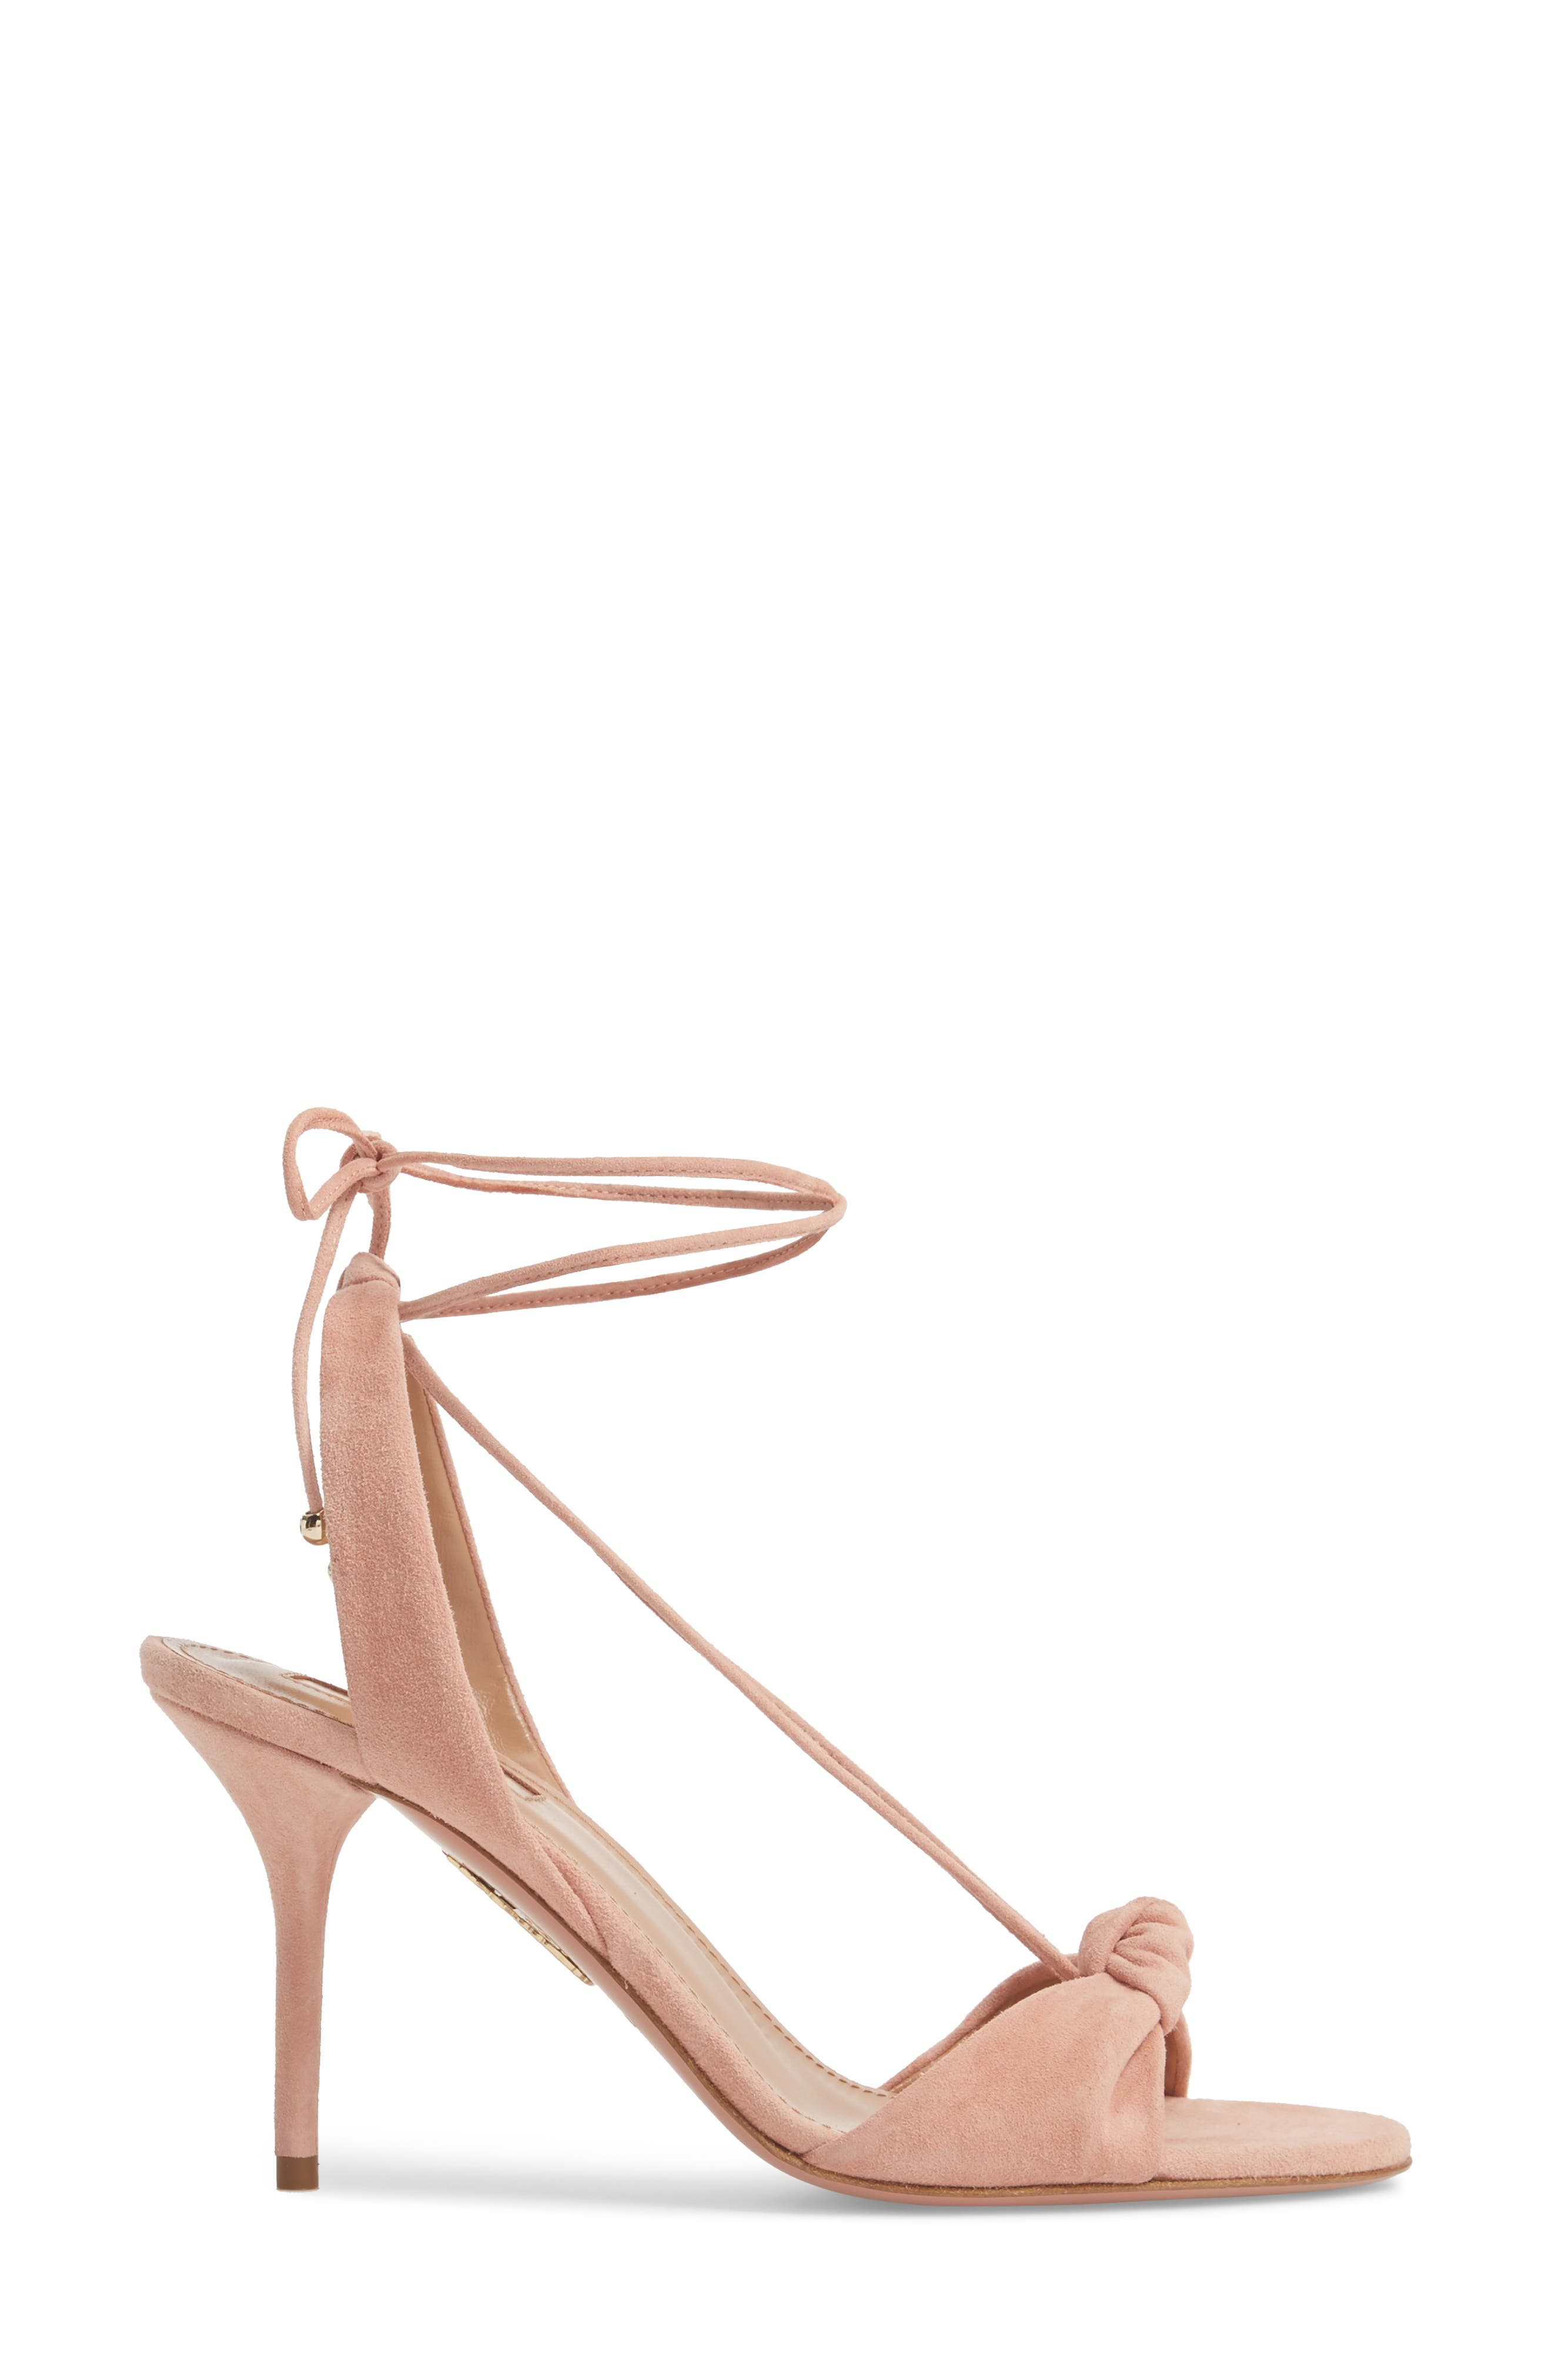 Virginie Lace-Up Sandal,                             Alternate thumbnail 3, color,                             French Rose